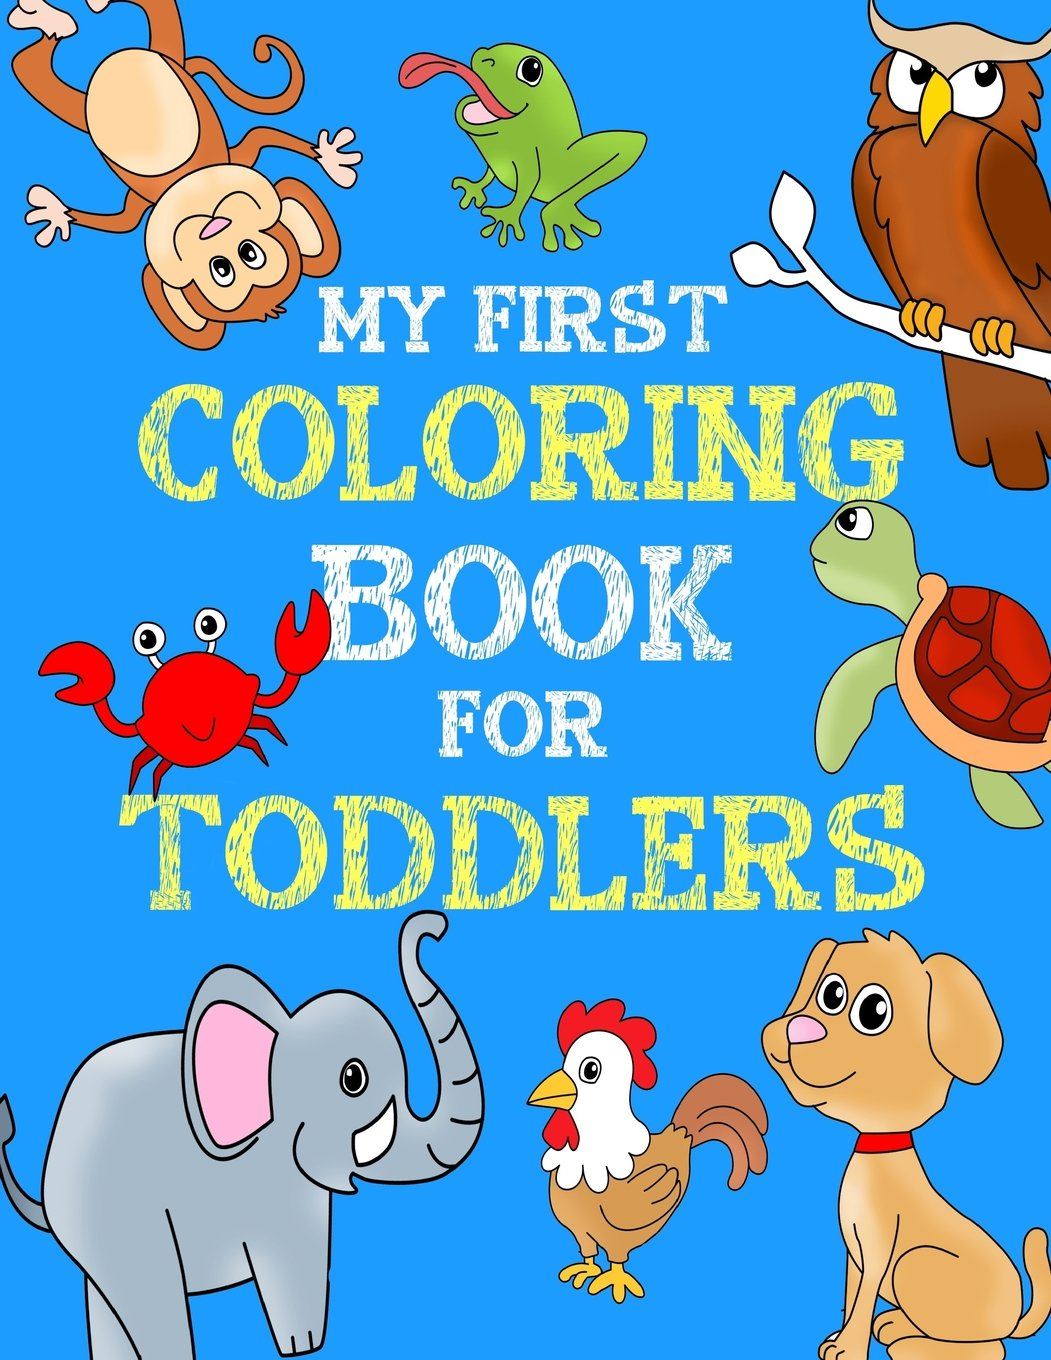 My first coloring book for toddlers educational easy animal coloring books for kids activity books for kids 2 4 volume 1 paperback april 4 2017